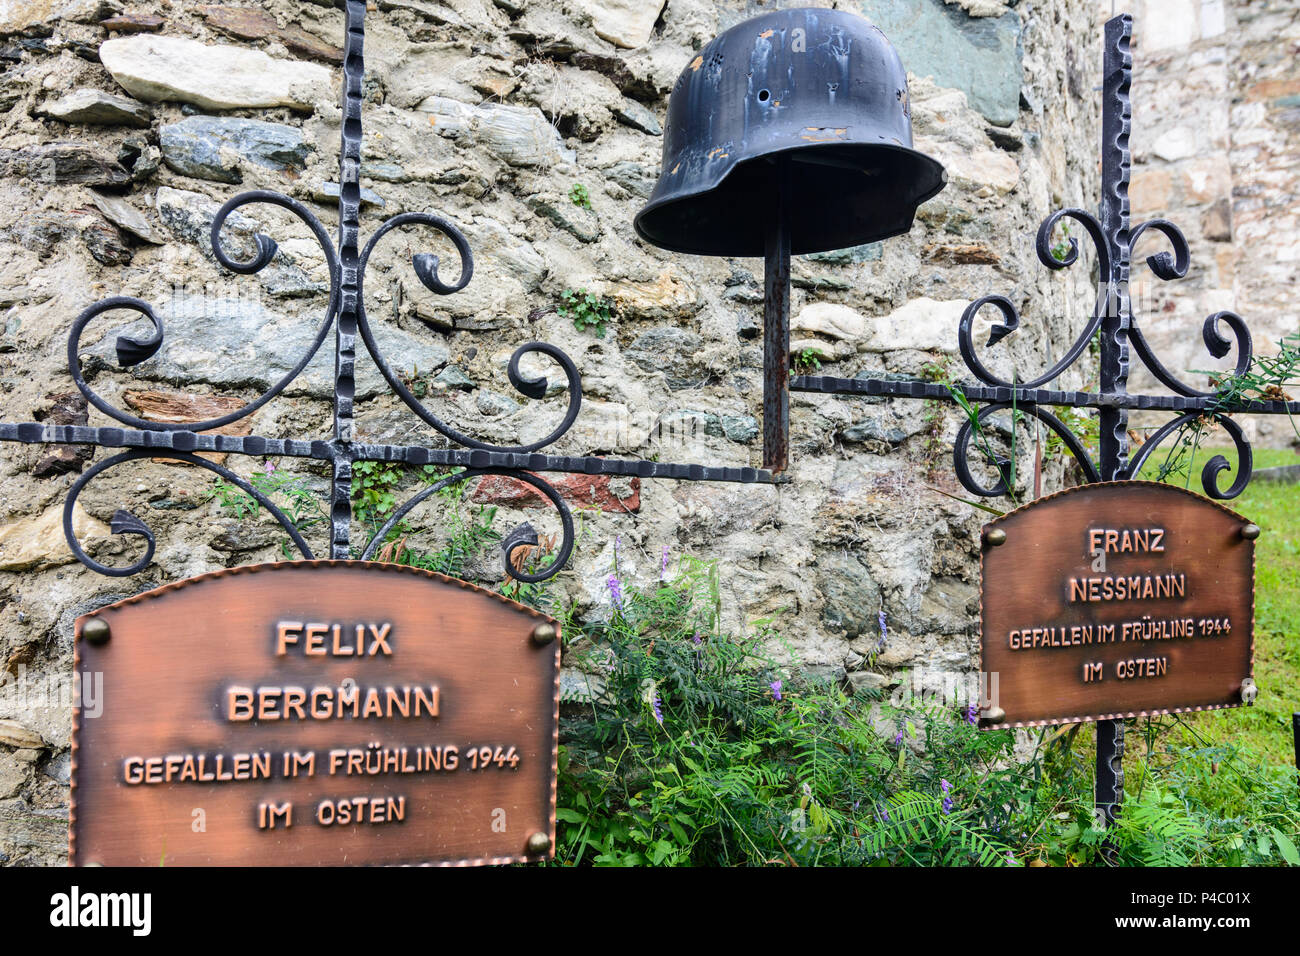 Maria Saal, grave crosses for soldiers died 2nd world war at eastern front, combat helmet with bullet hole, at church wall in Karnburg, Kärnten, Carinthia, Austria - Stock Image